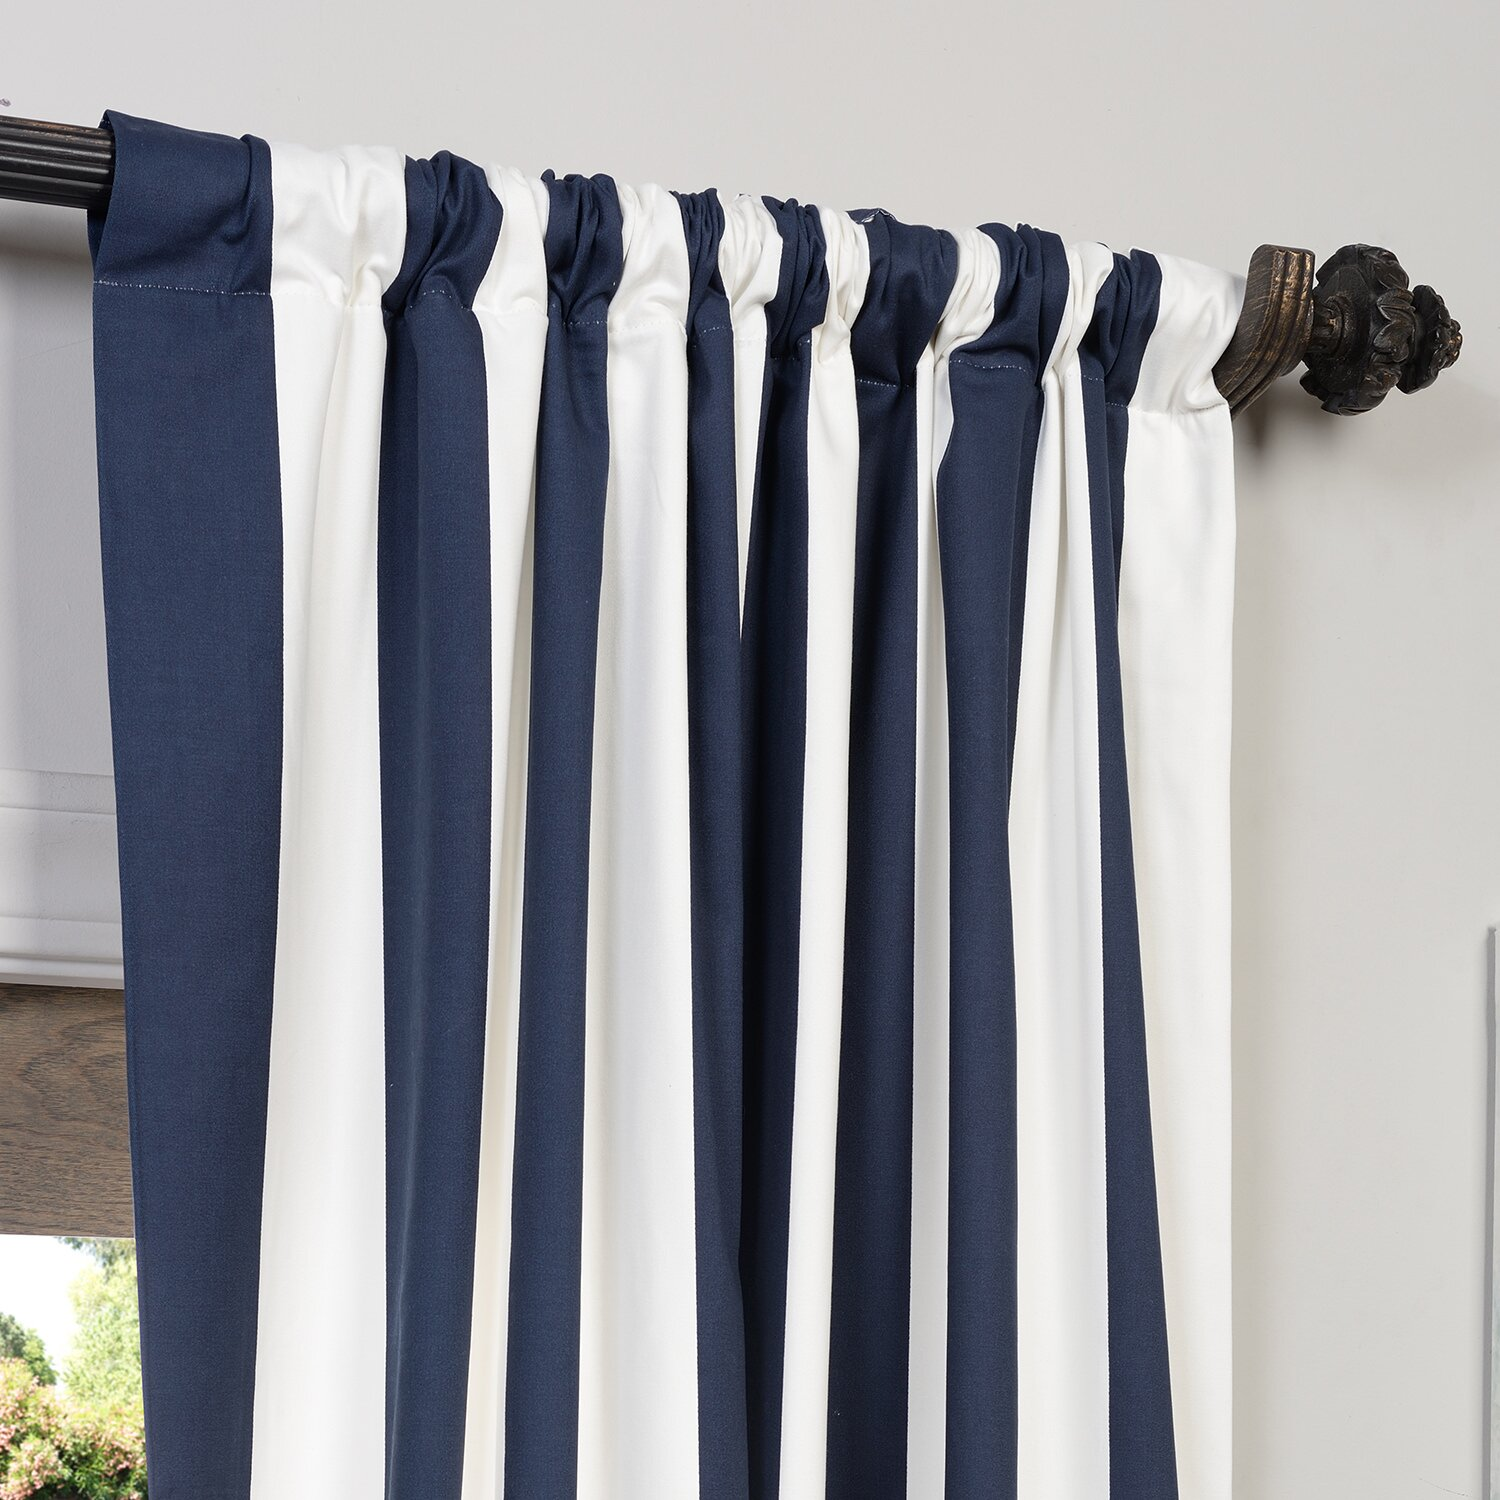 Half Price Drapes Cabana Printed Cotton Rod Pocket Semi